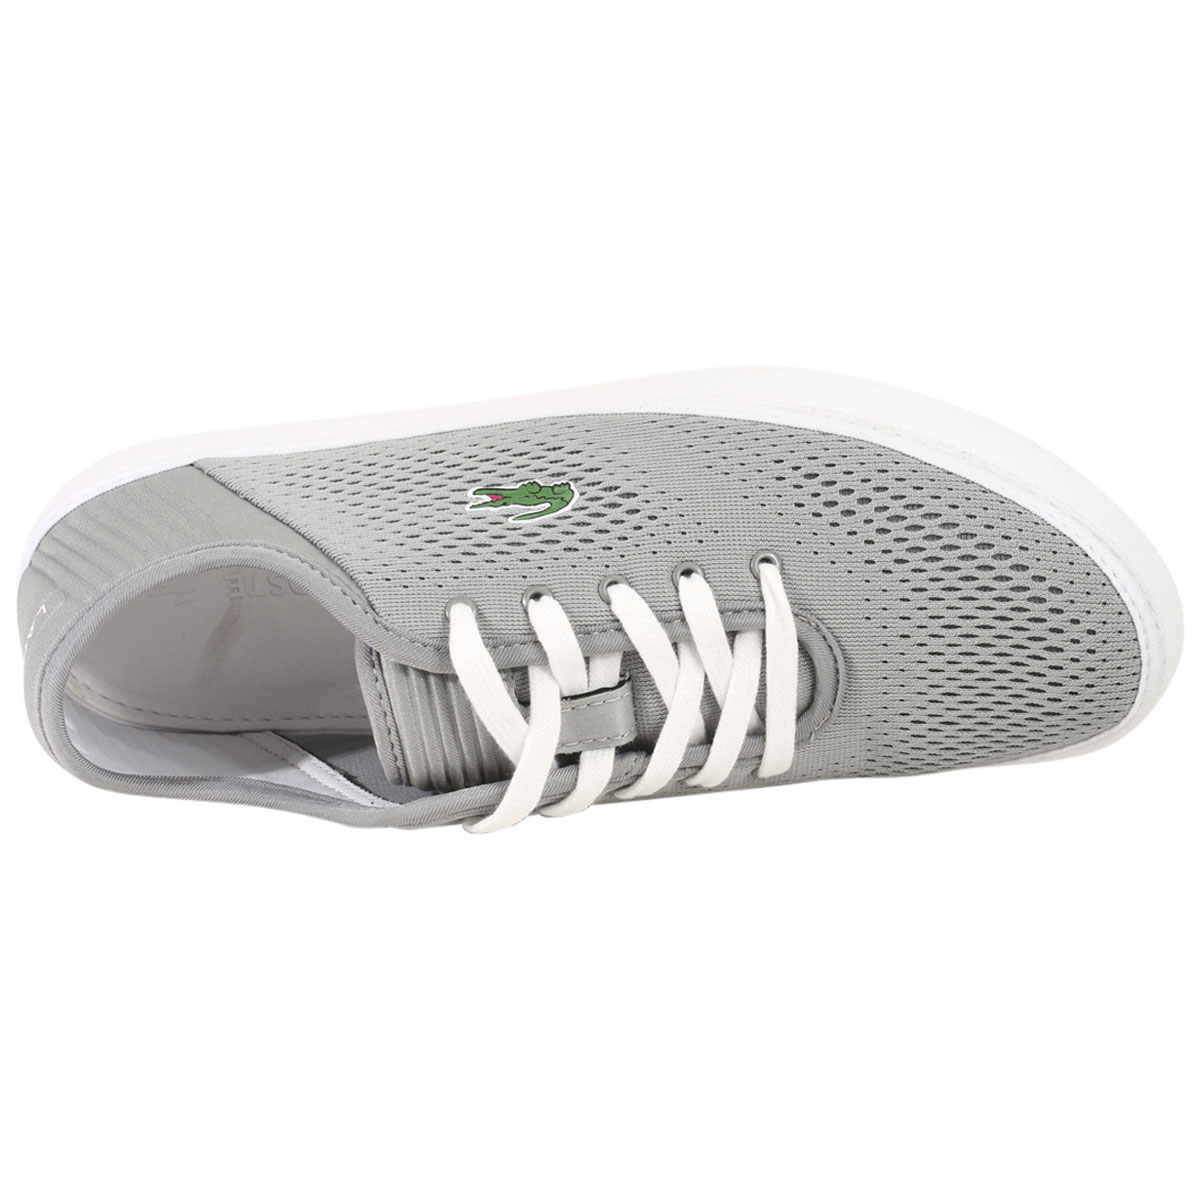 Lacoste-Men-039-s-L-Ydro-Lace-118-Trainers-Sneakers-Shoes thumbnail 20